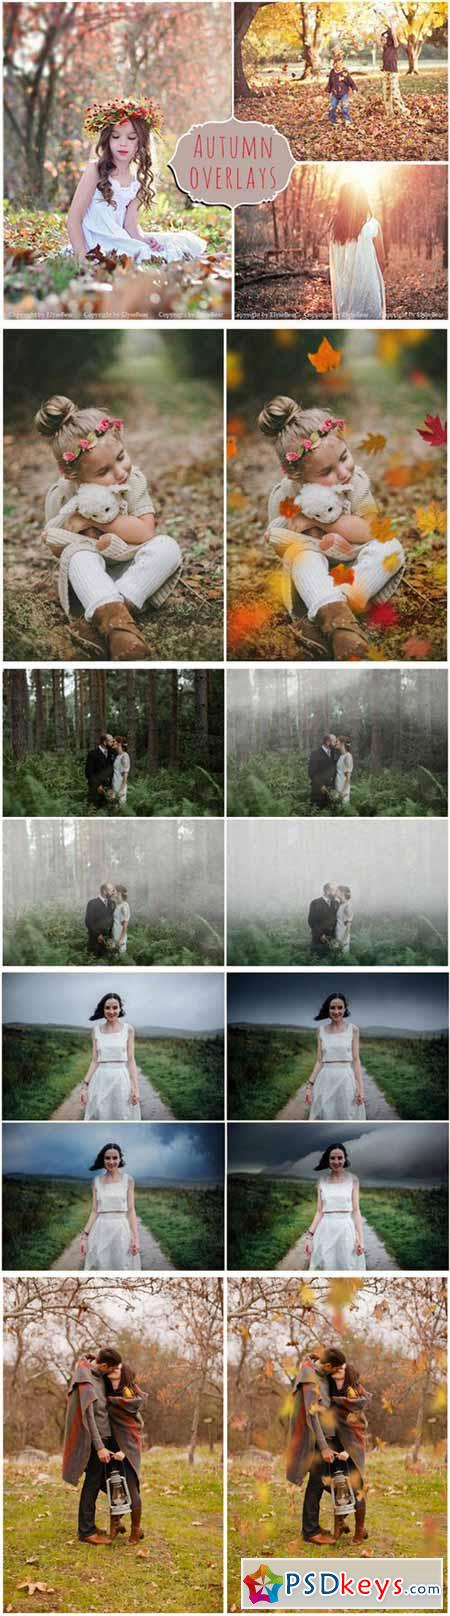 50 Autumn Photoshop Overlays Bundle 387715